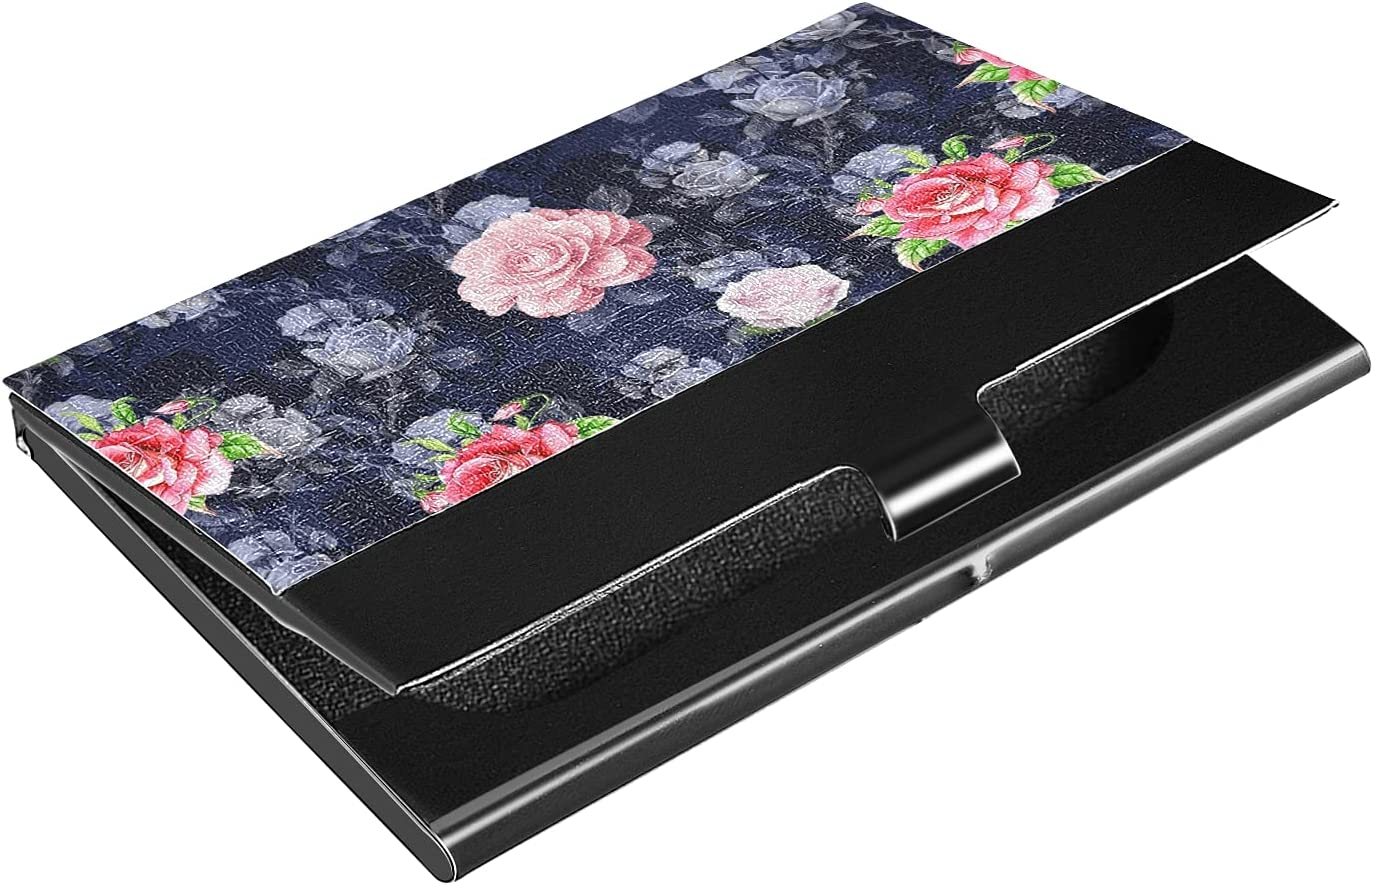 OTVEE Colorful Flowers Business Card Holder Wallet Stainless Steel & Leather Pocket Business Card Case Organizer Slim Name Card ID Card Holders Credit Card Wallet Carrier Purse for Women Men